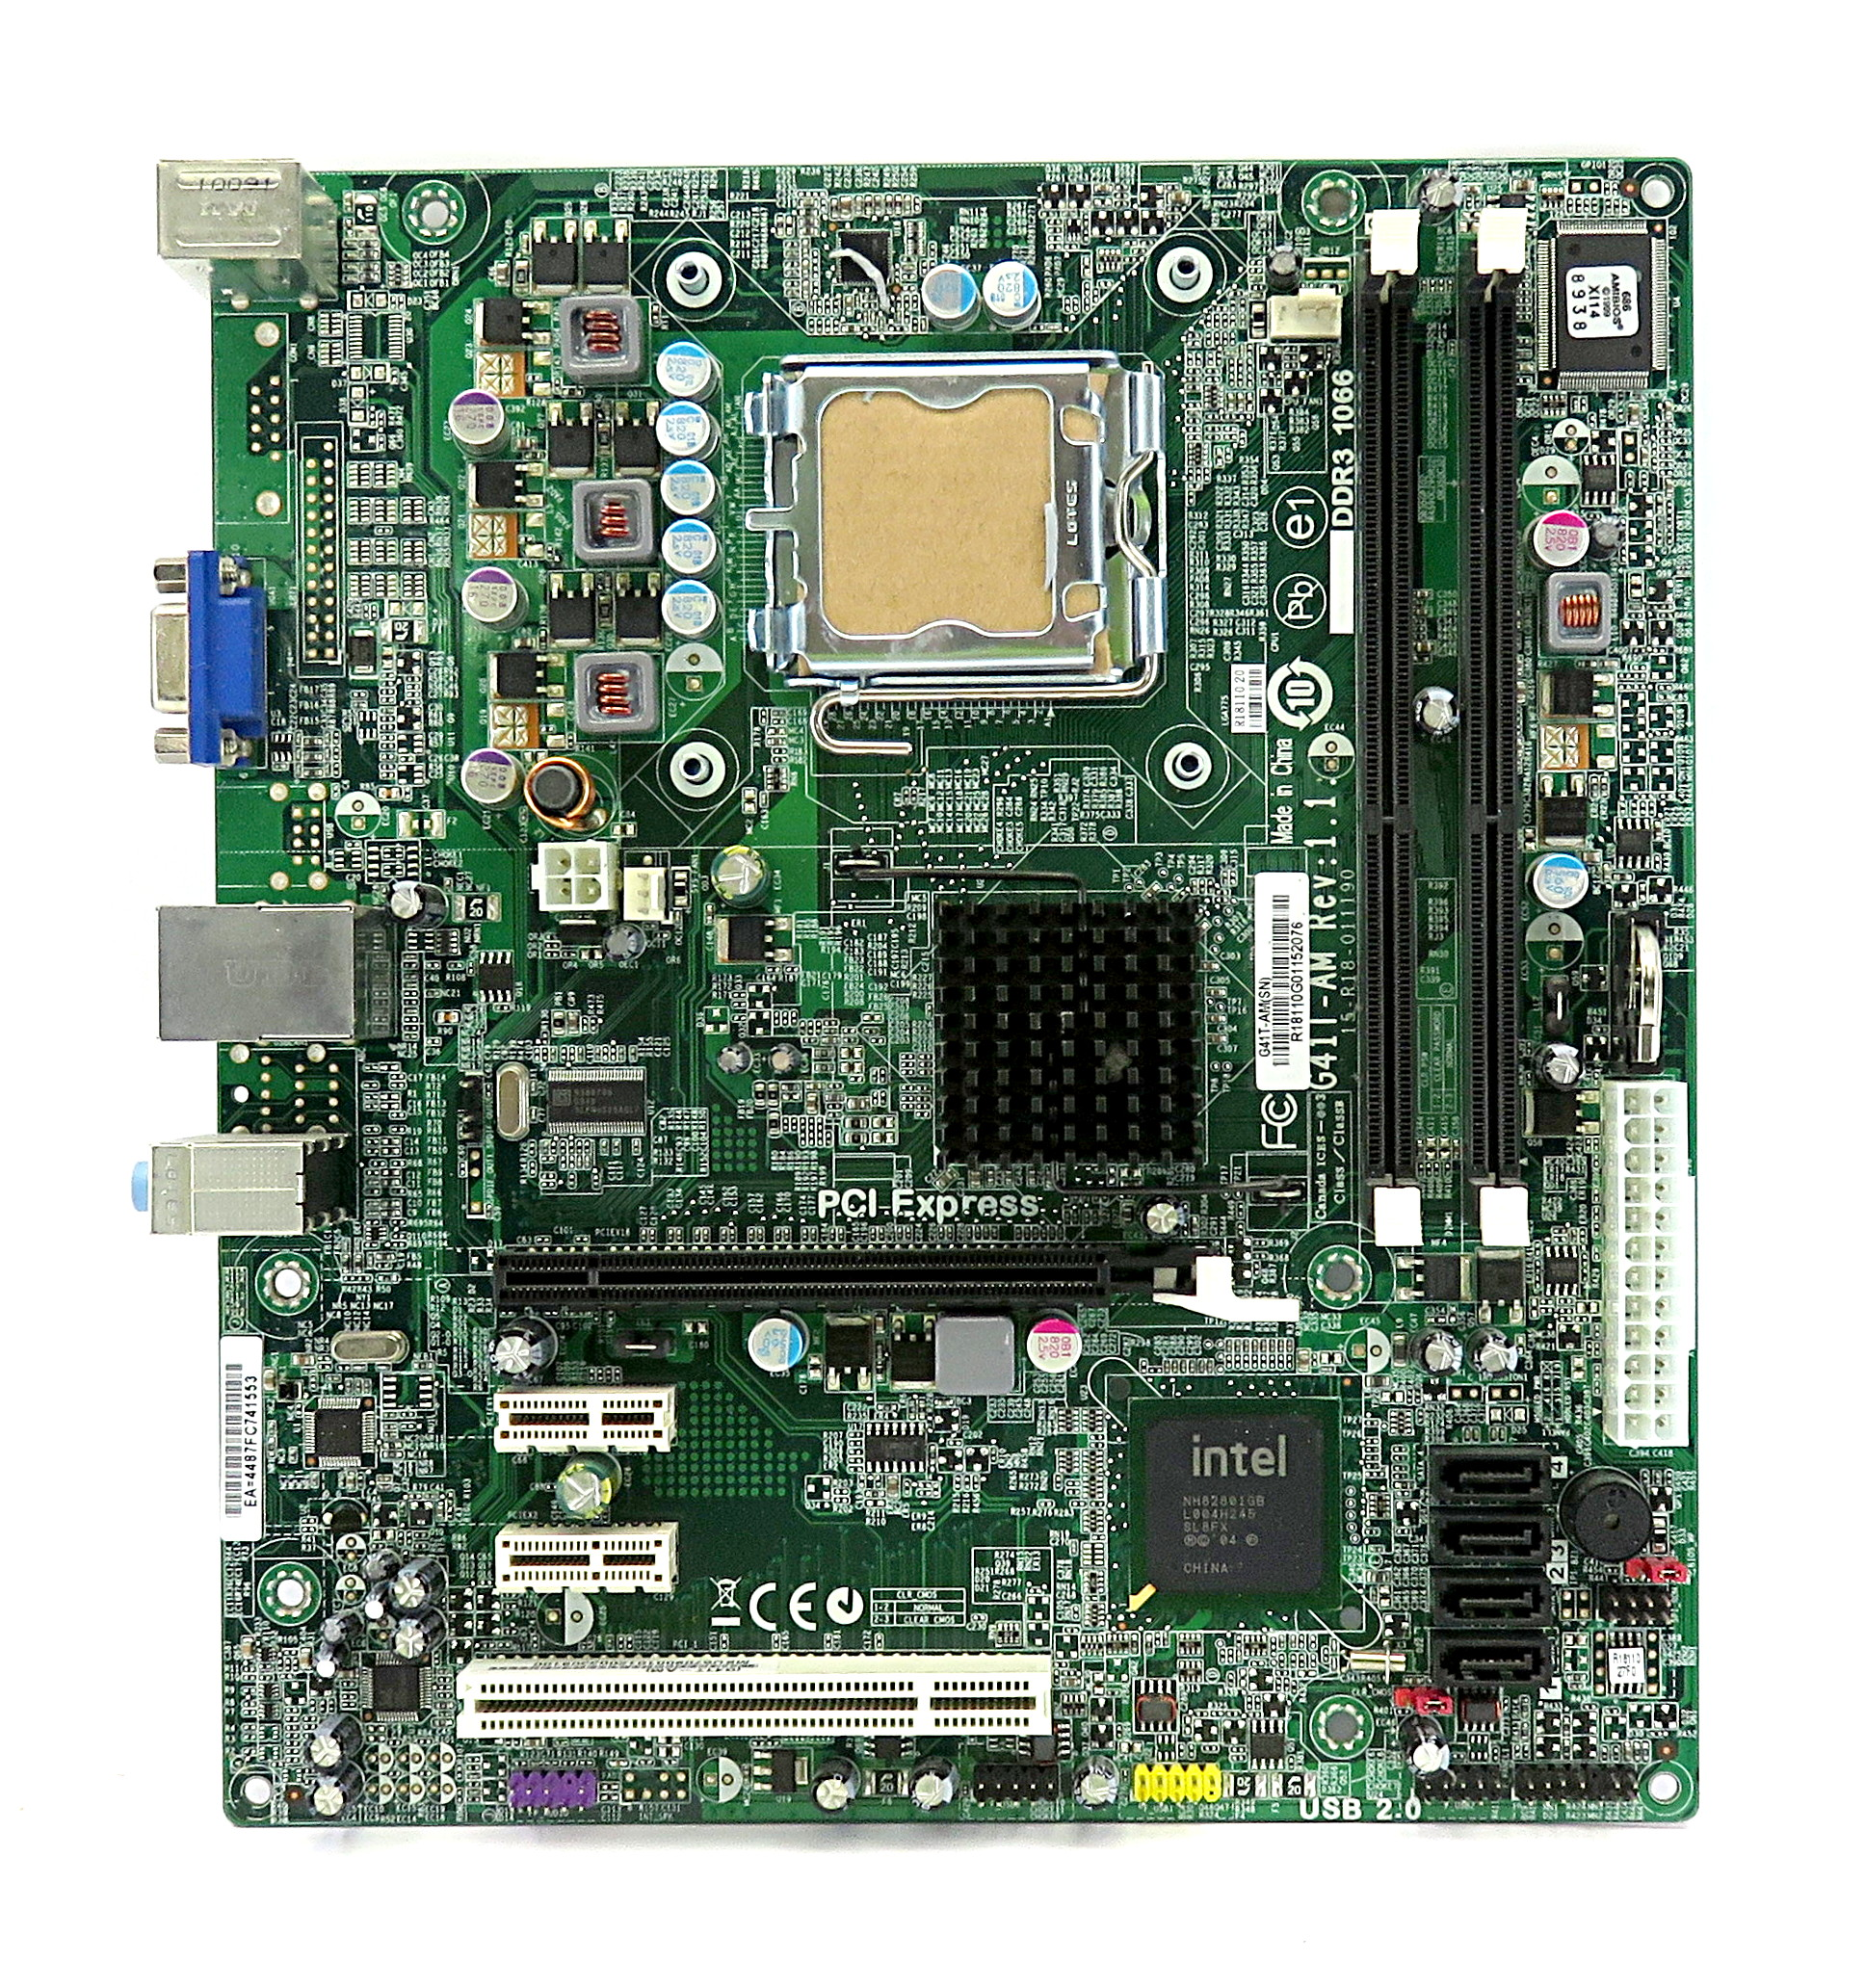 Acer G41T-AM Rev 1.1 LGA775 mATX Motherboard